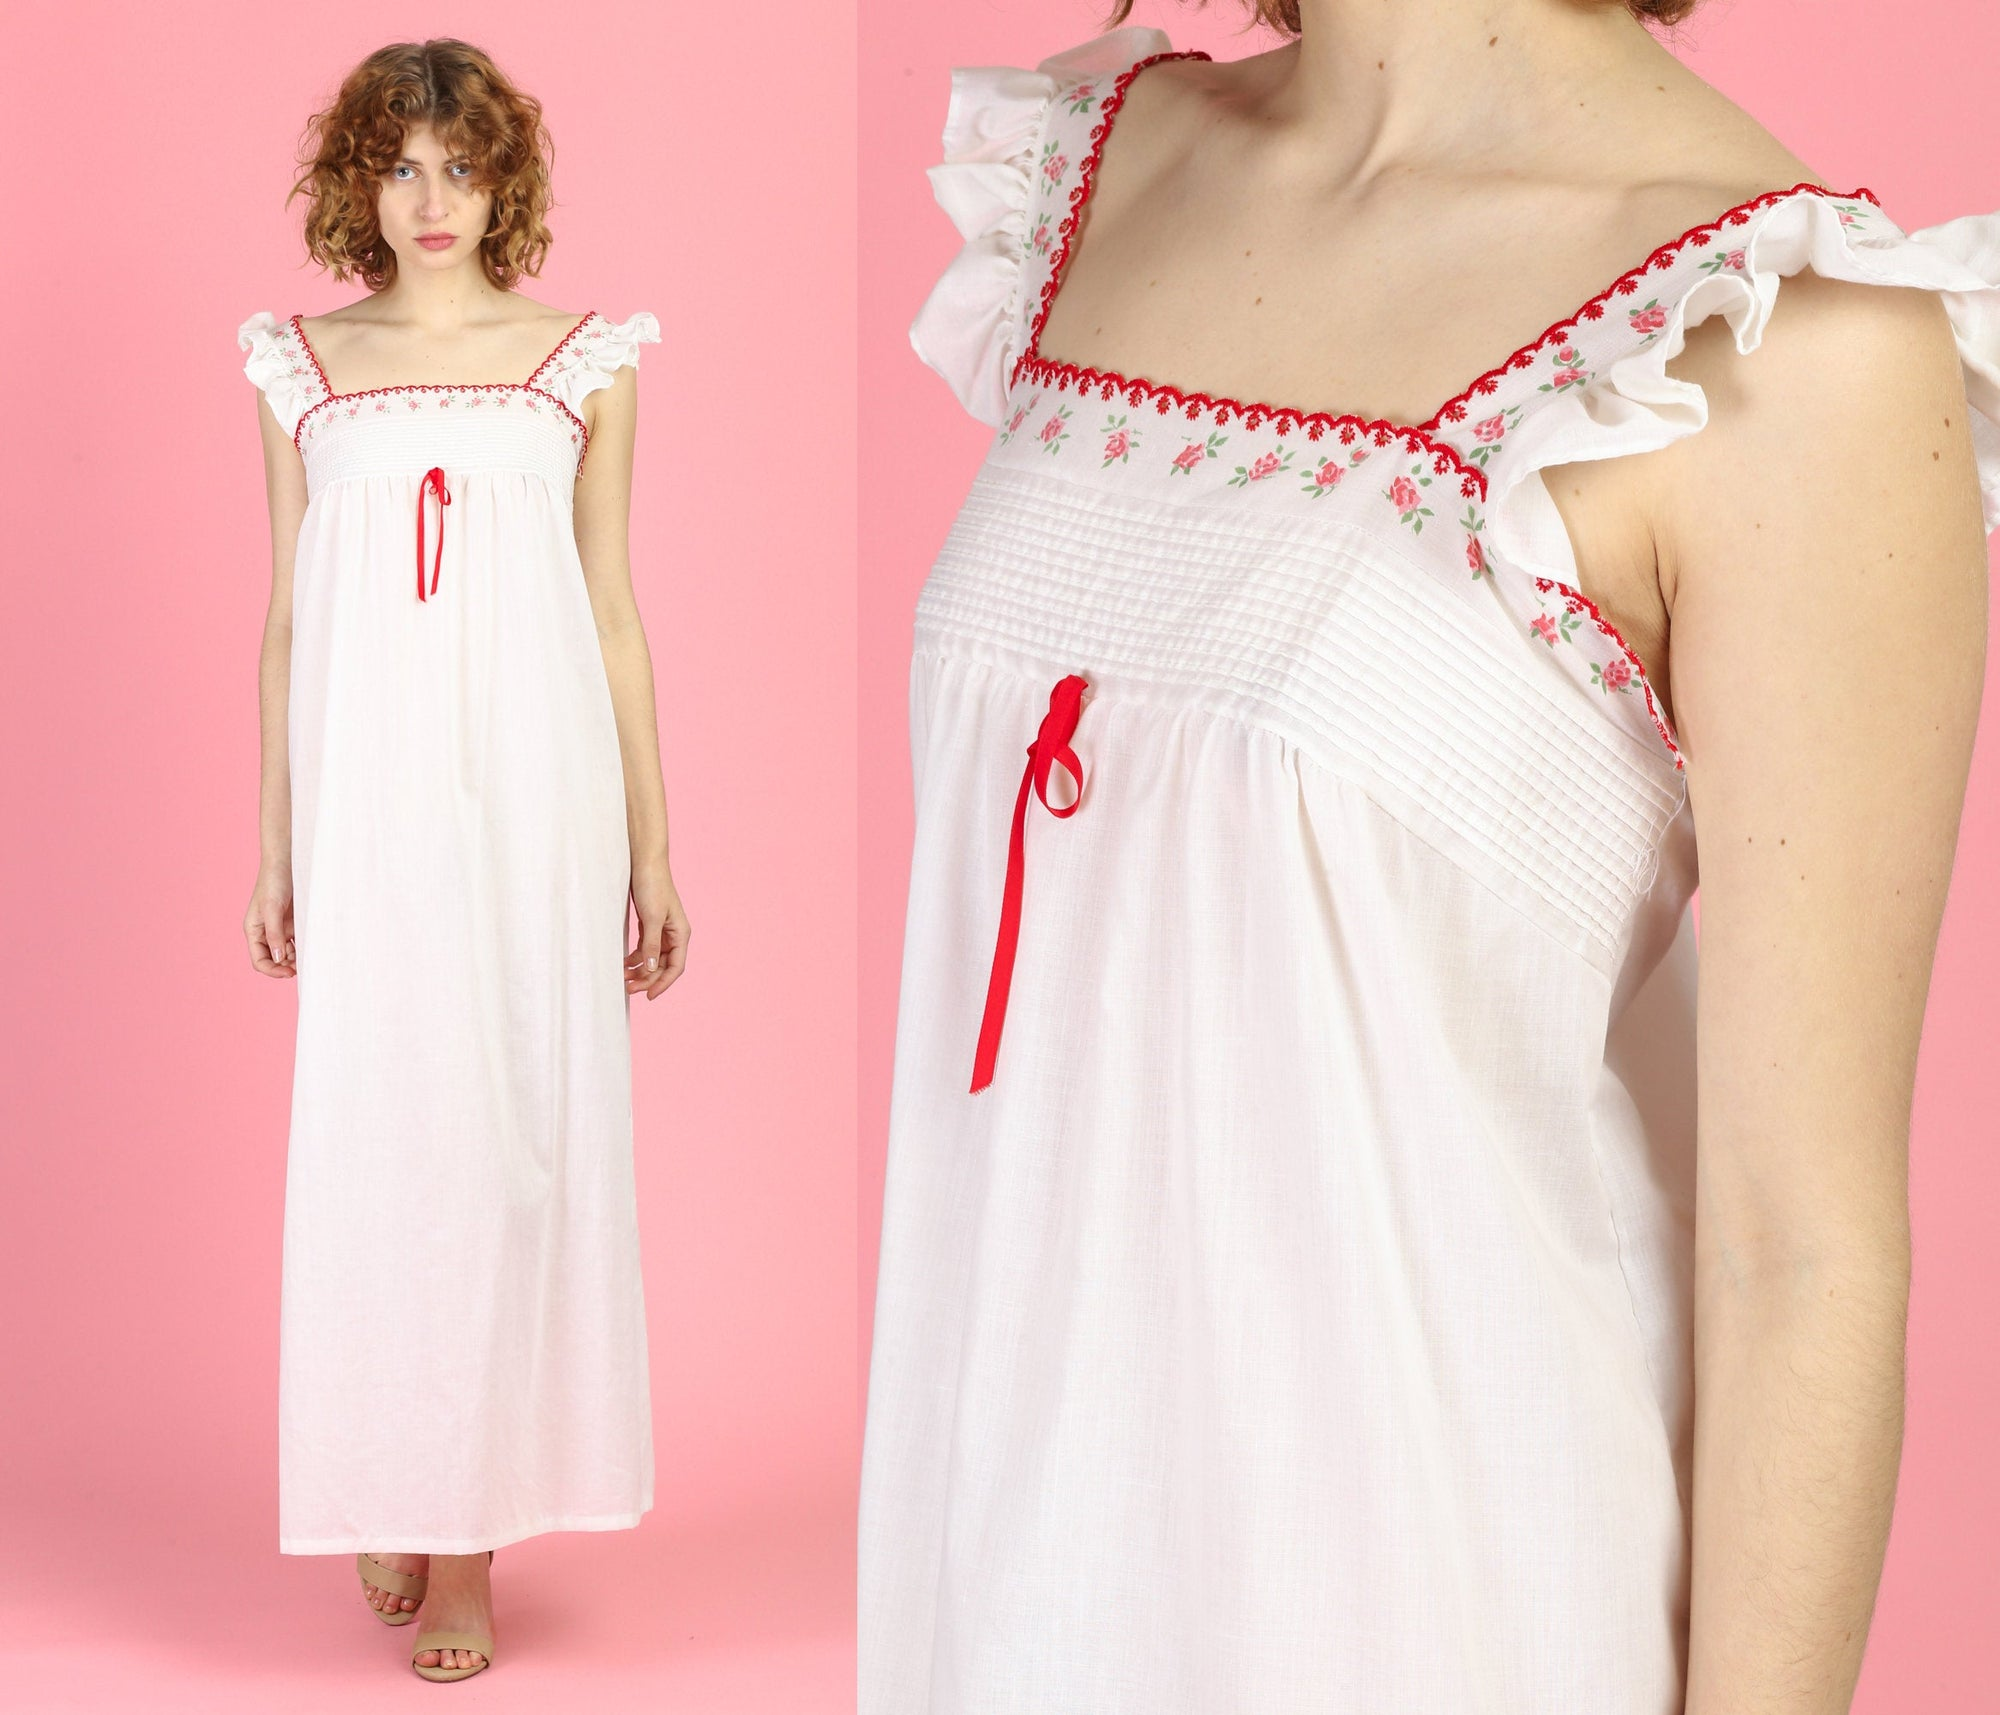 70s White & Red Floral Trim Nightgown - Small